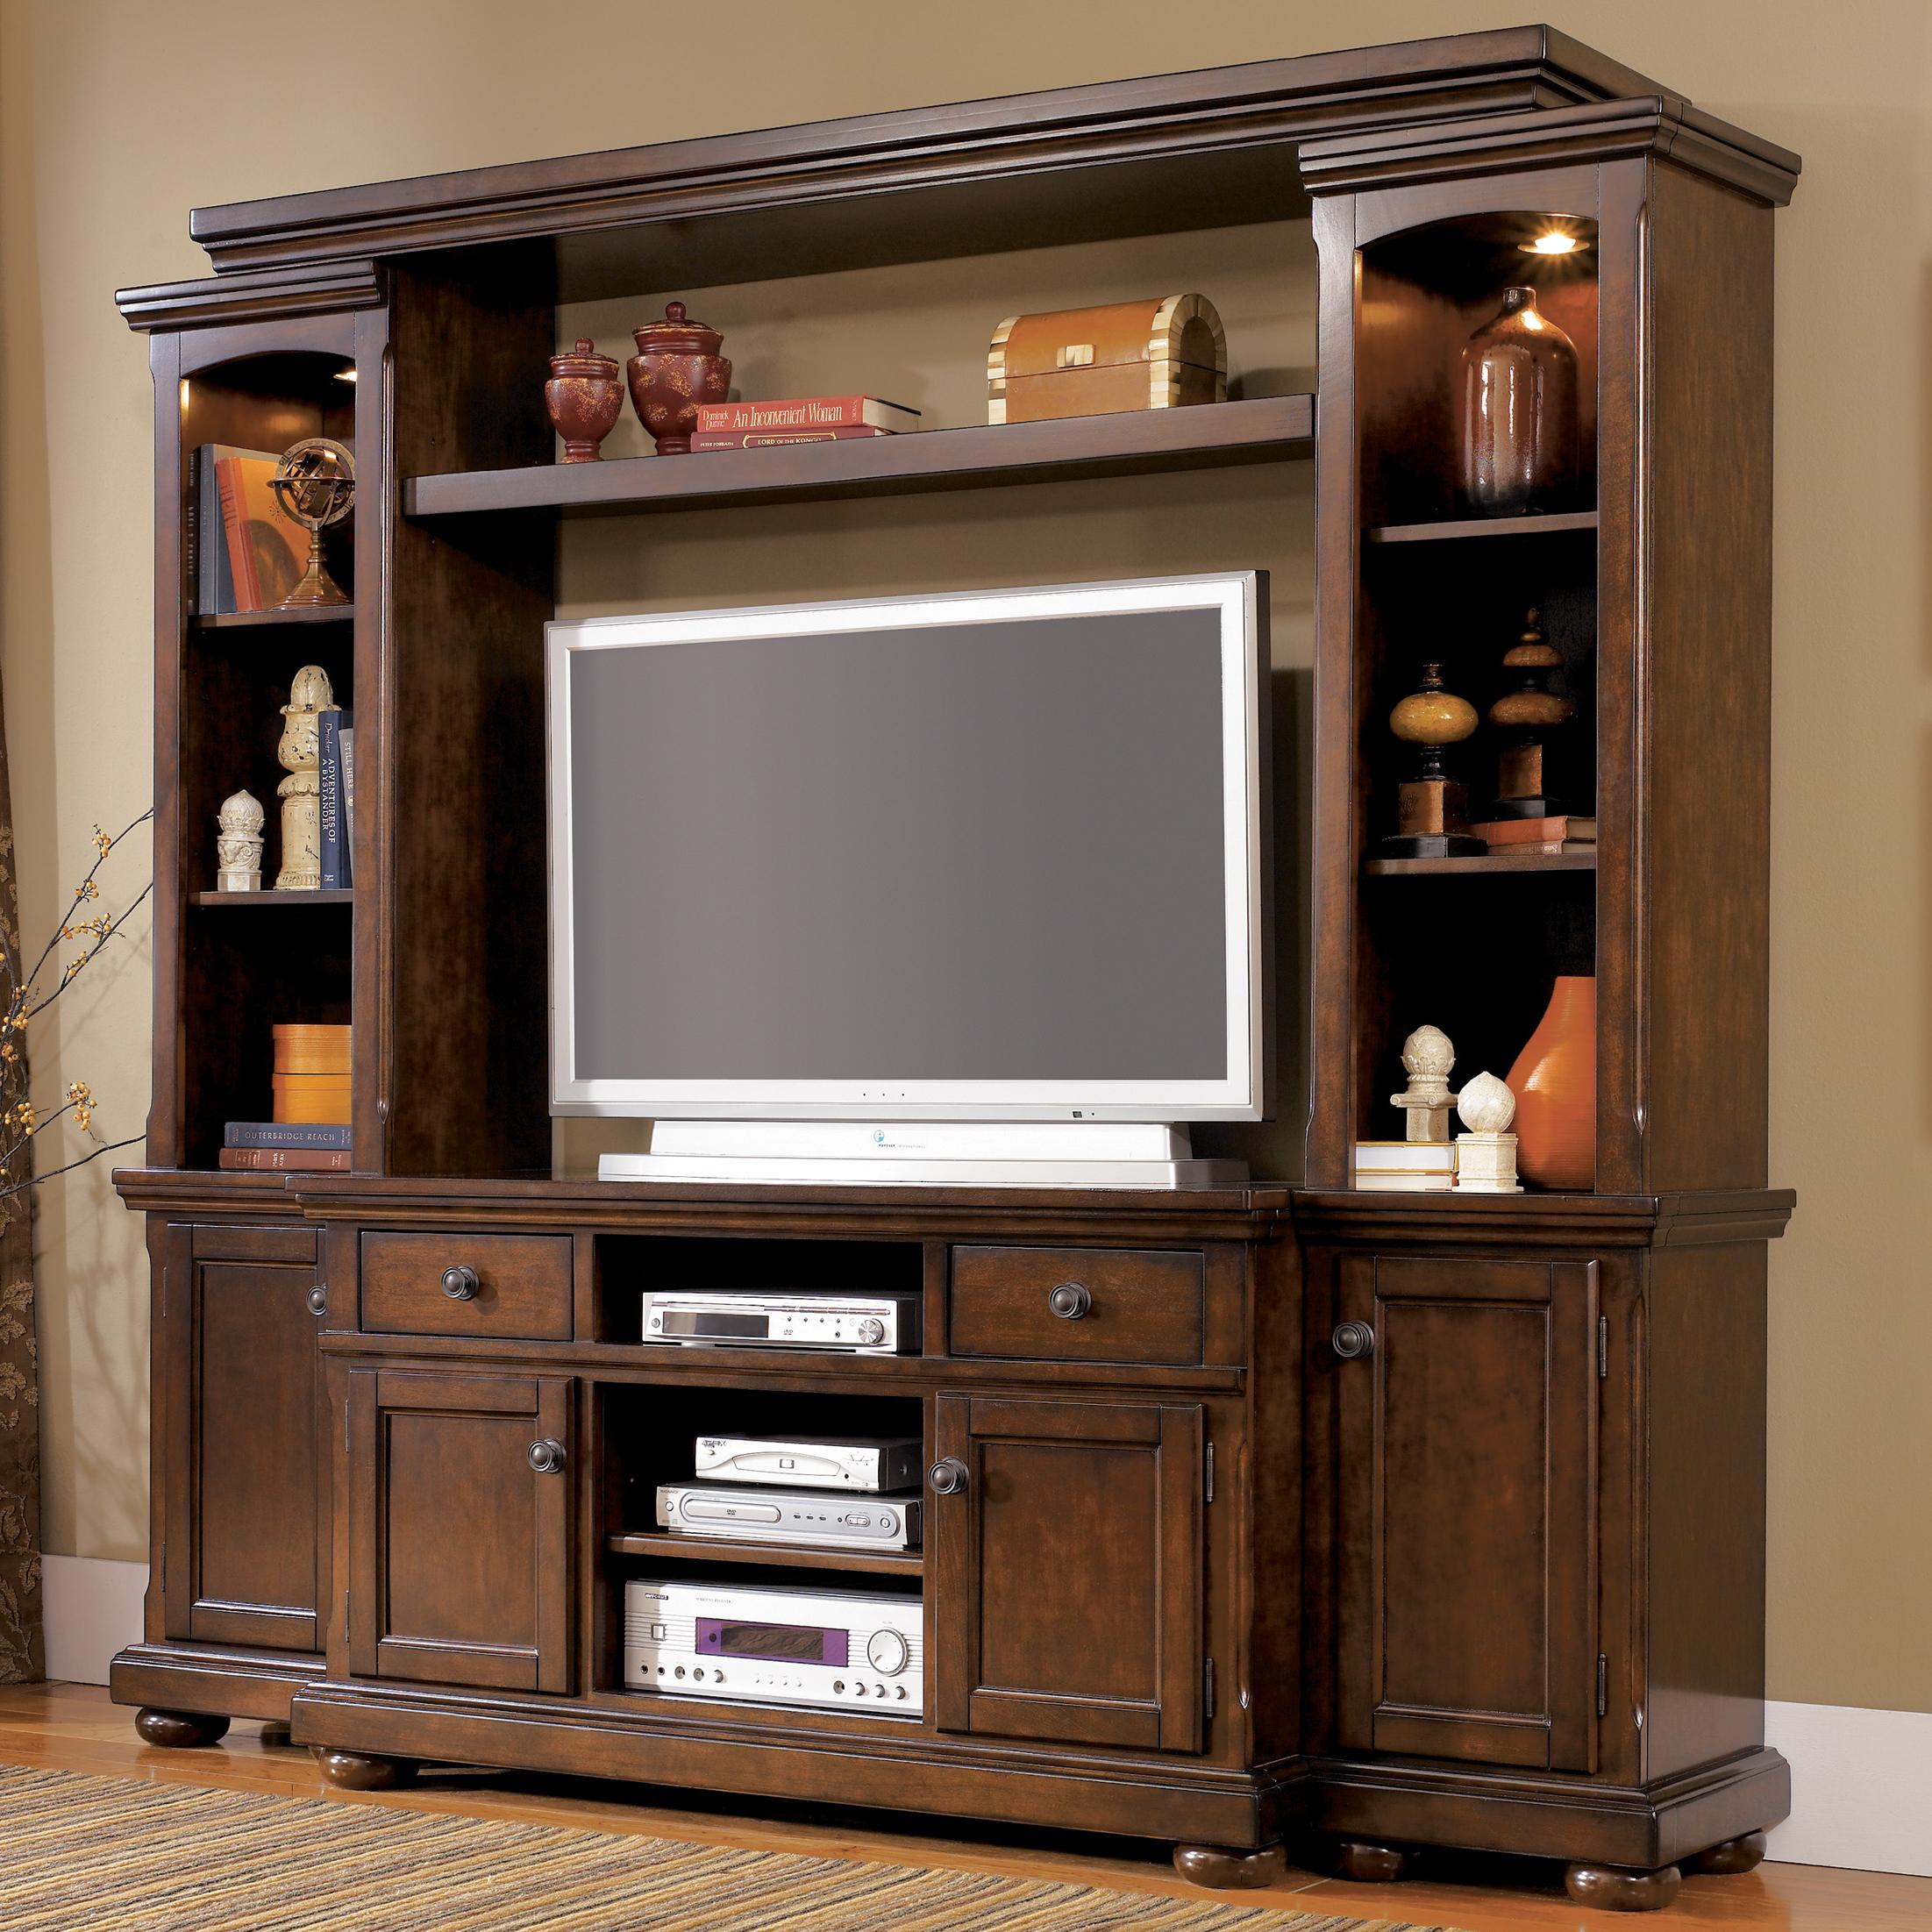 Ashley Furniture Porter House Entertainment Wall Unit with TV